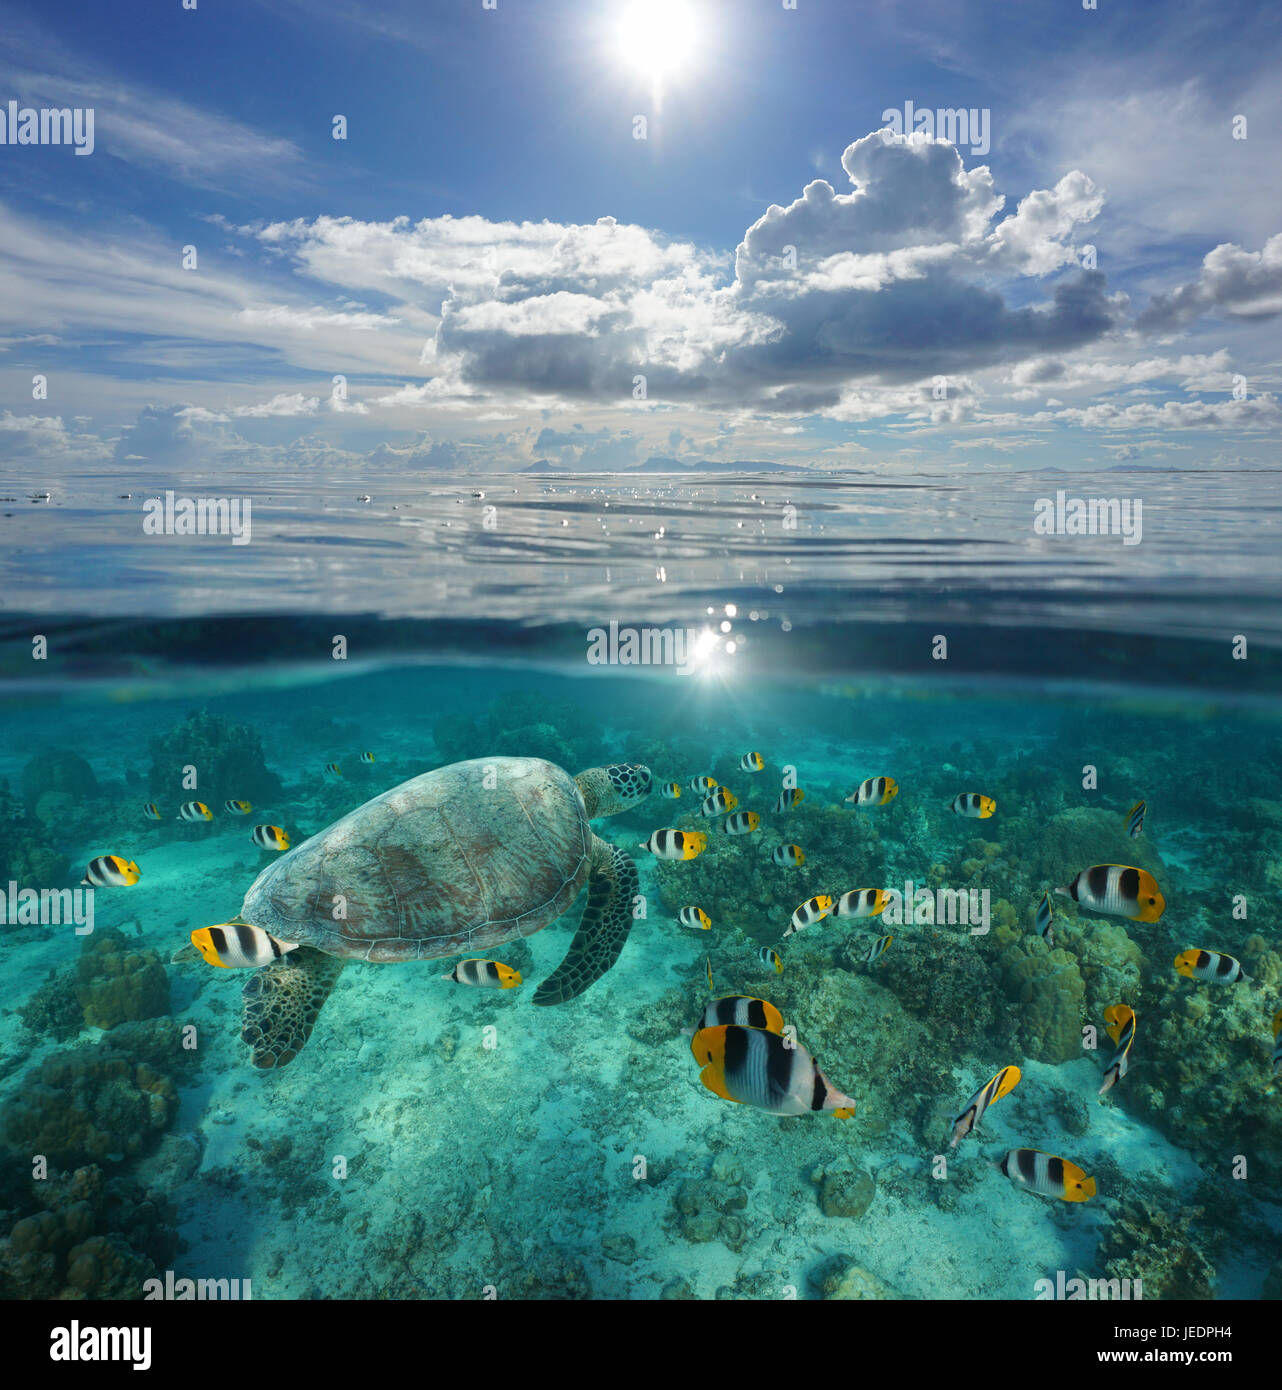 Over and under sea surface, tropical fish with a turtle underwater and an island at the horizon with cloudy blue - Stock Image